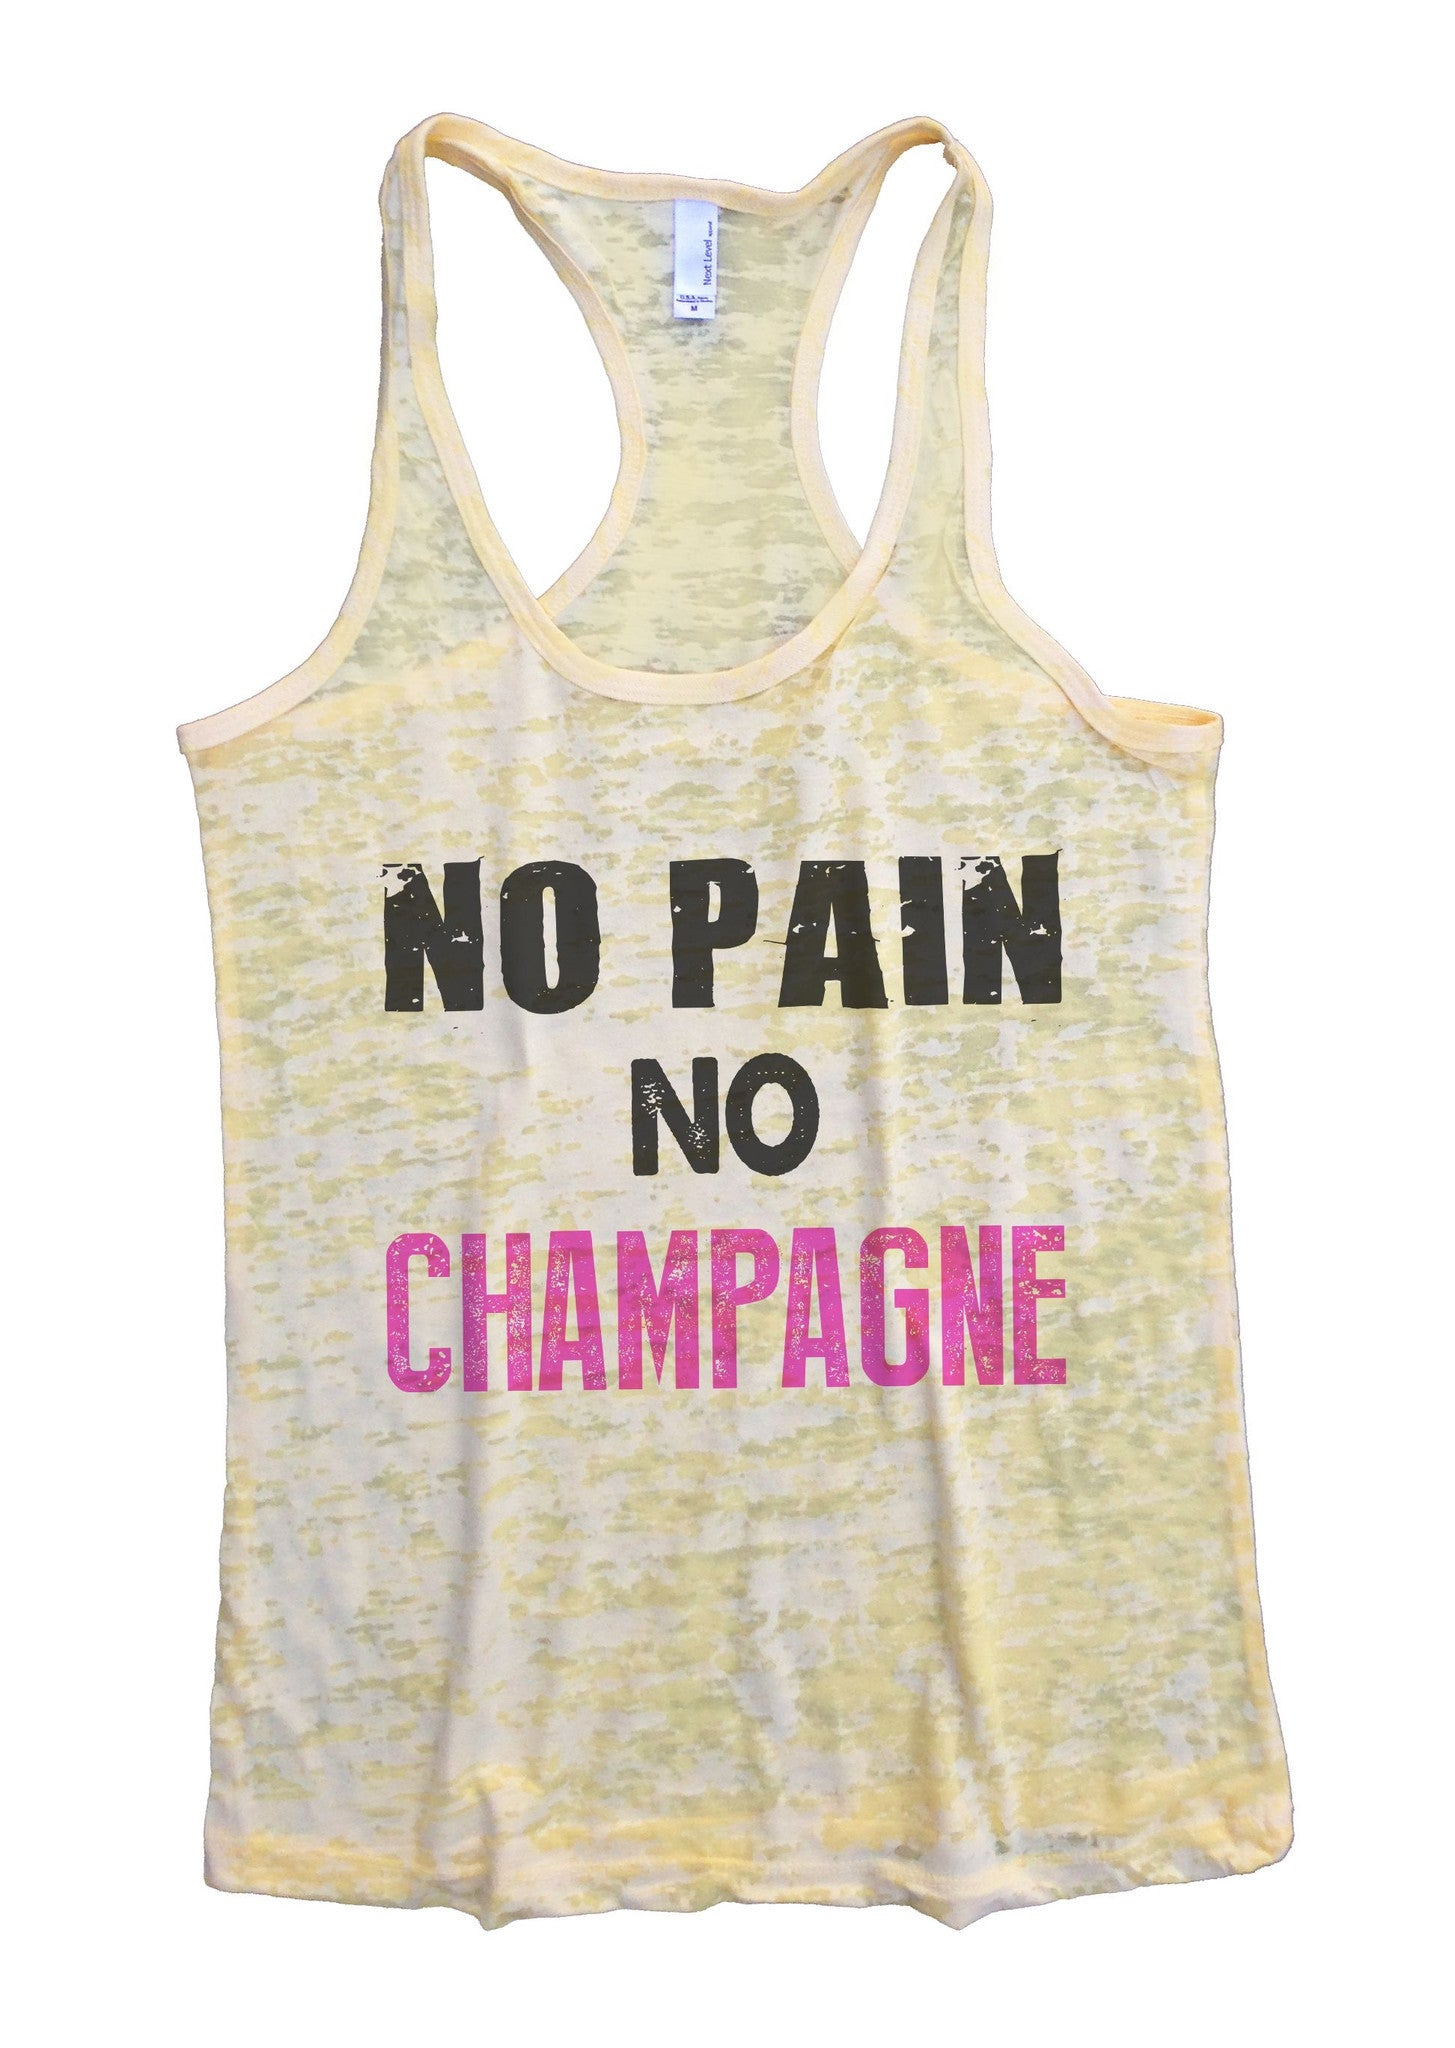 No Pain No Champagne Burnout Tank Top By BurnoutTankTops.com - 683 - Funny Shirts Tank Tops Burnouts and Triblends  - 6